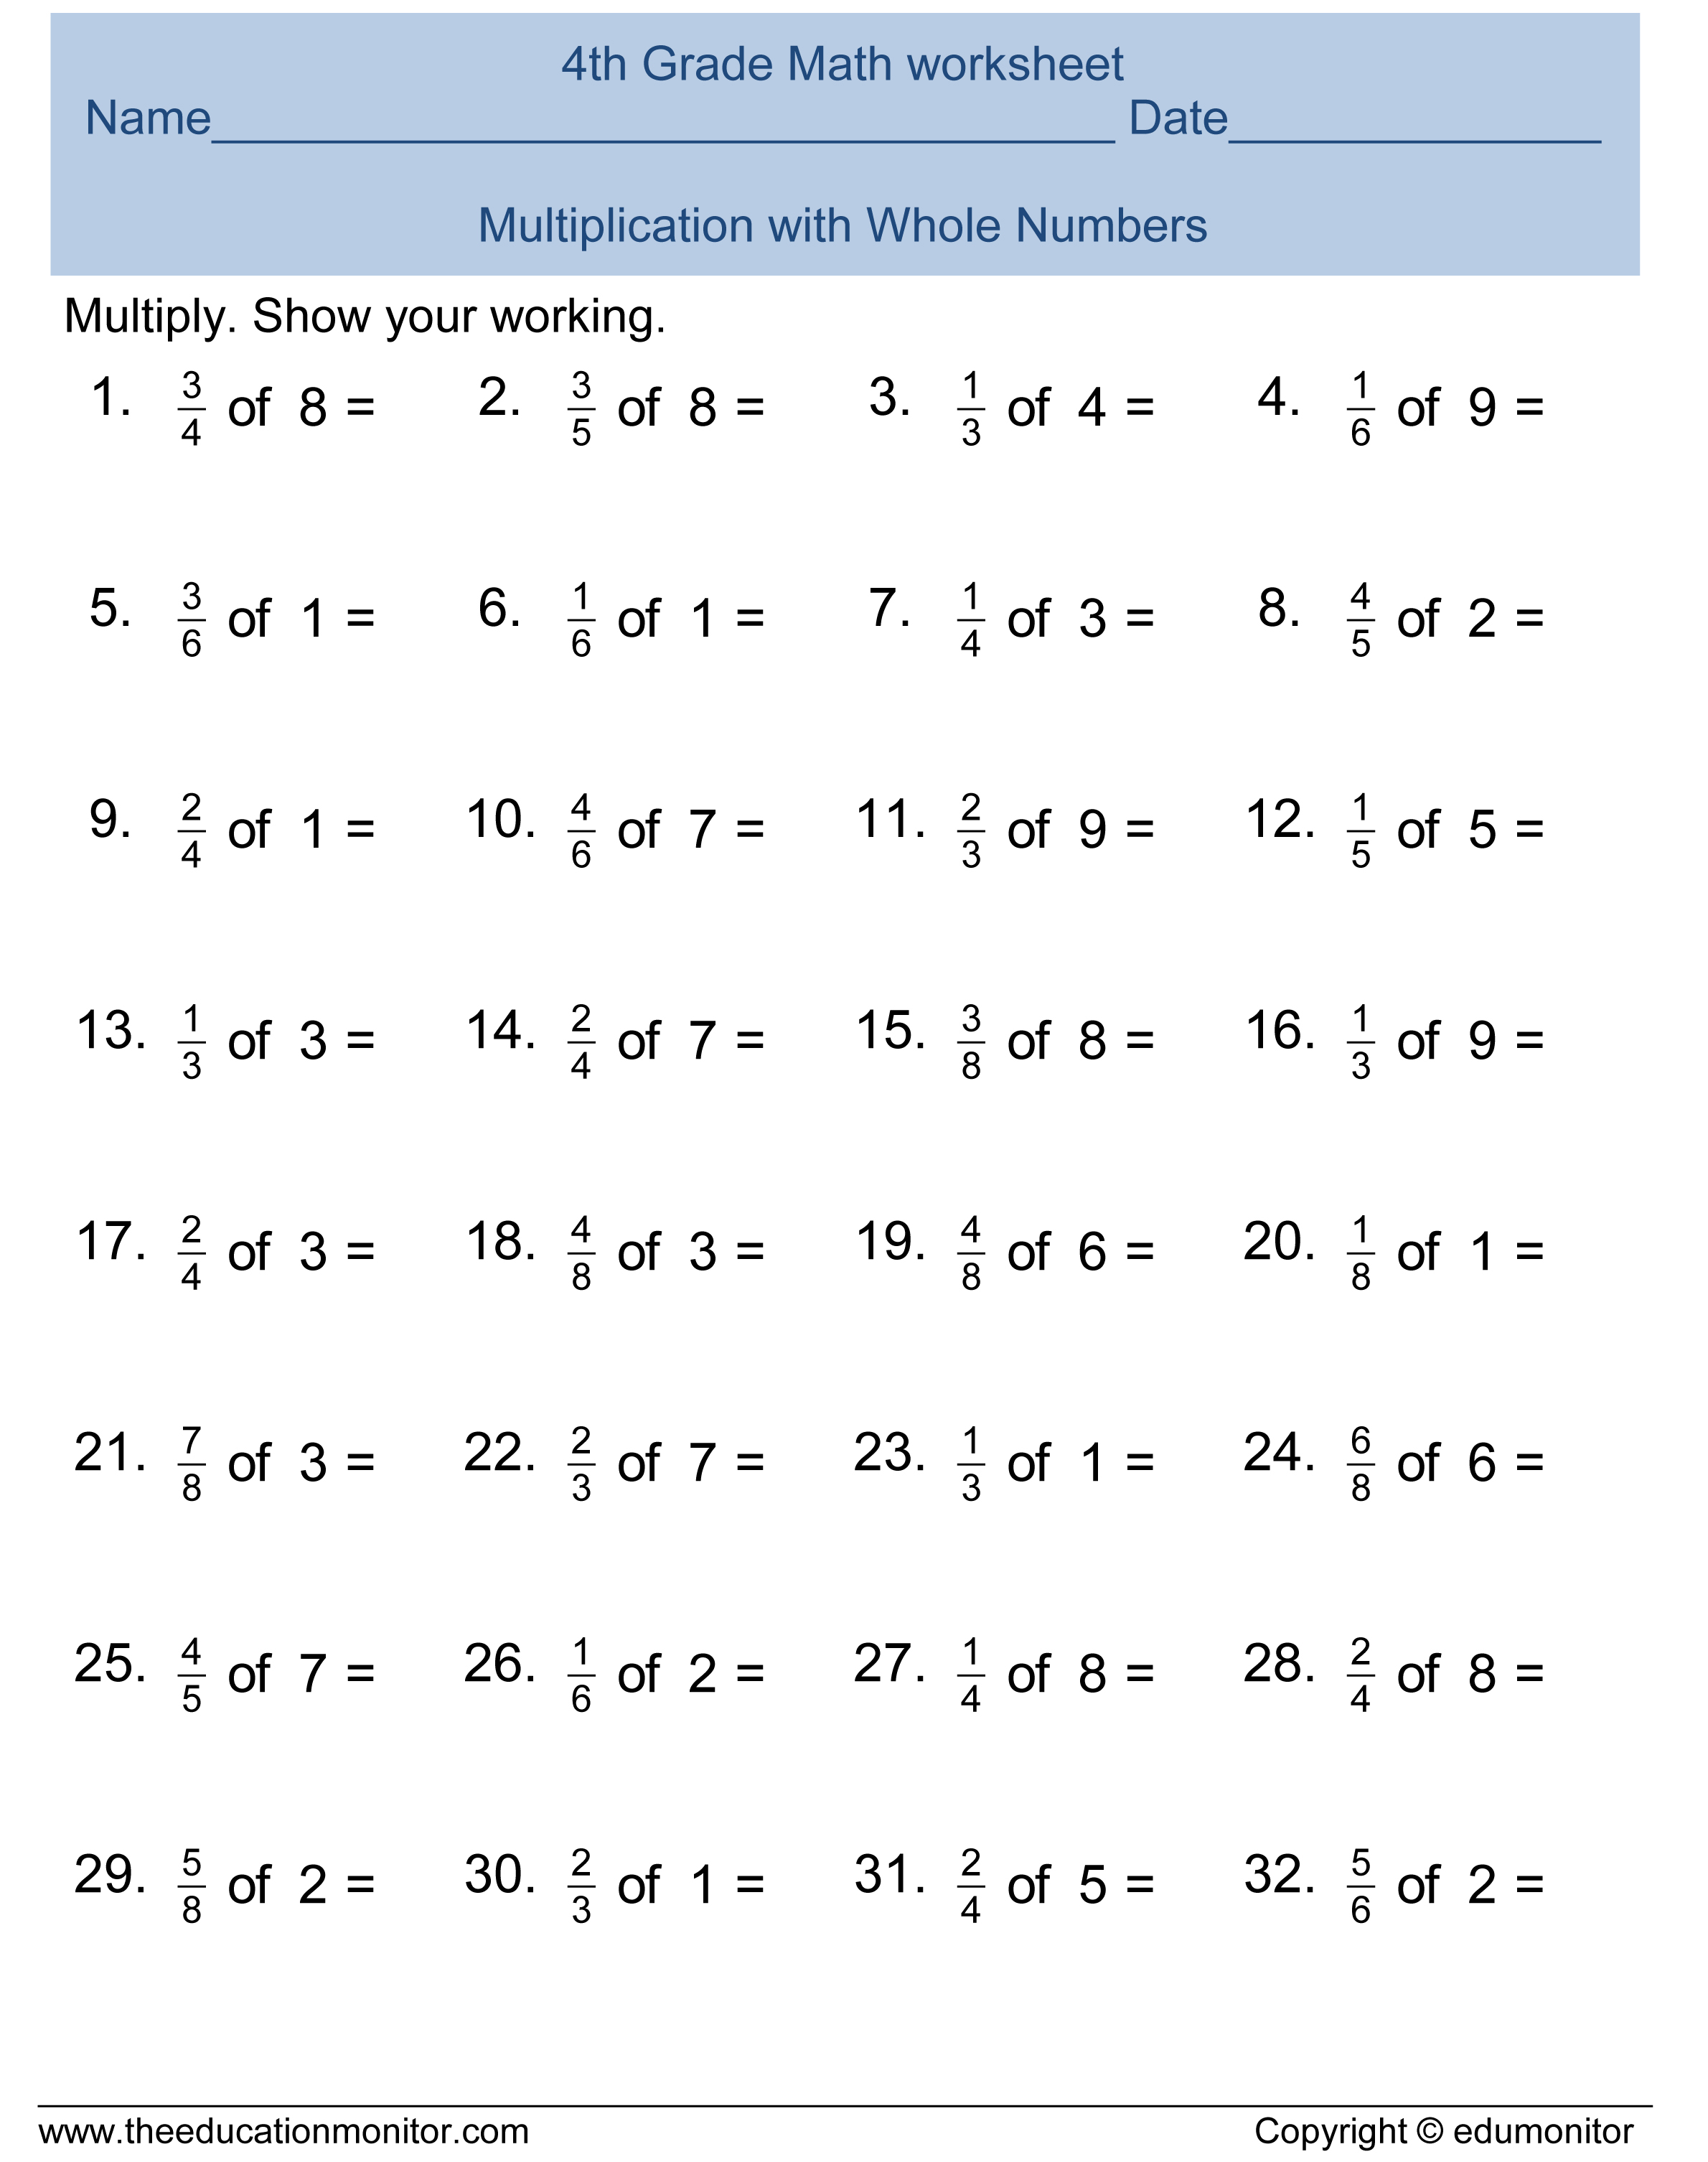 math worksheet : super teachers fourth grade worksheets archives  edumonitor : Super Teacher Worksheets Addition And Subtraction